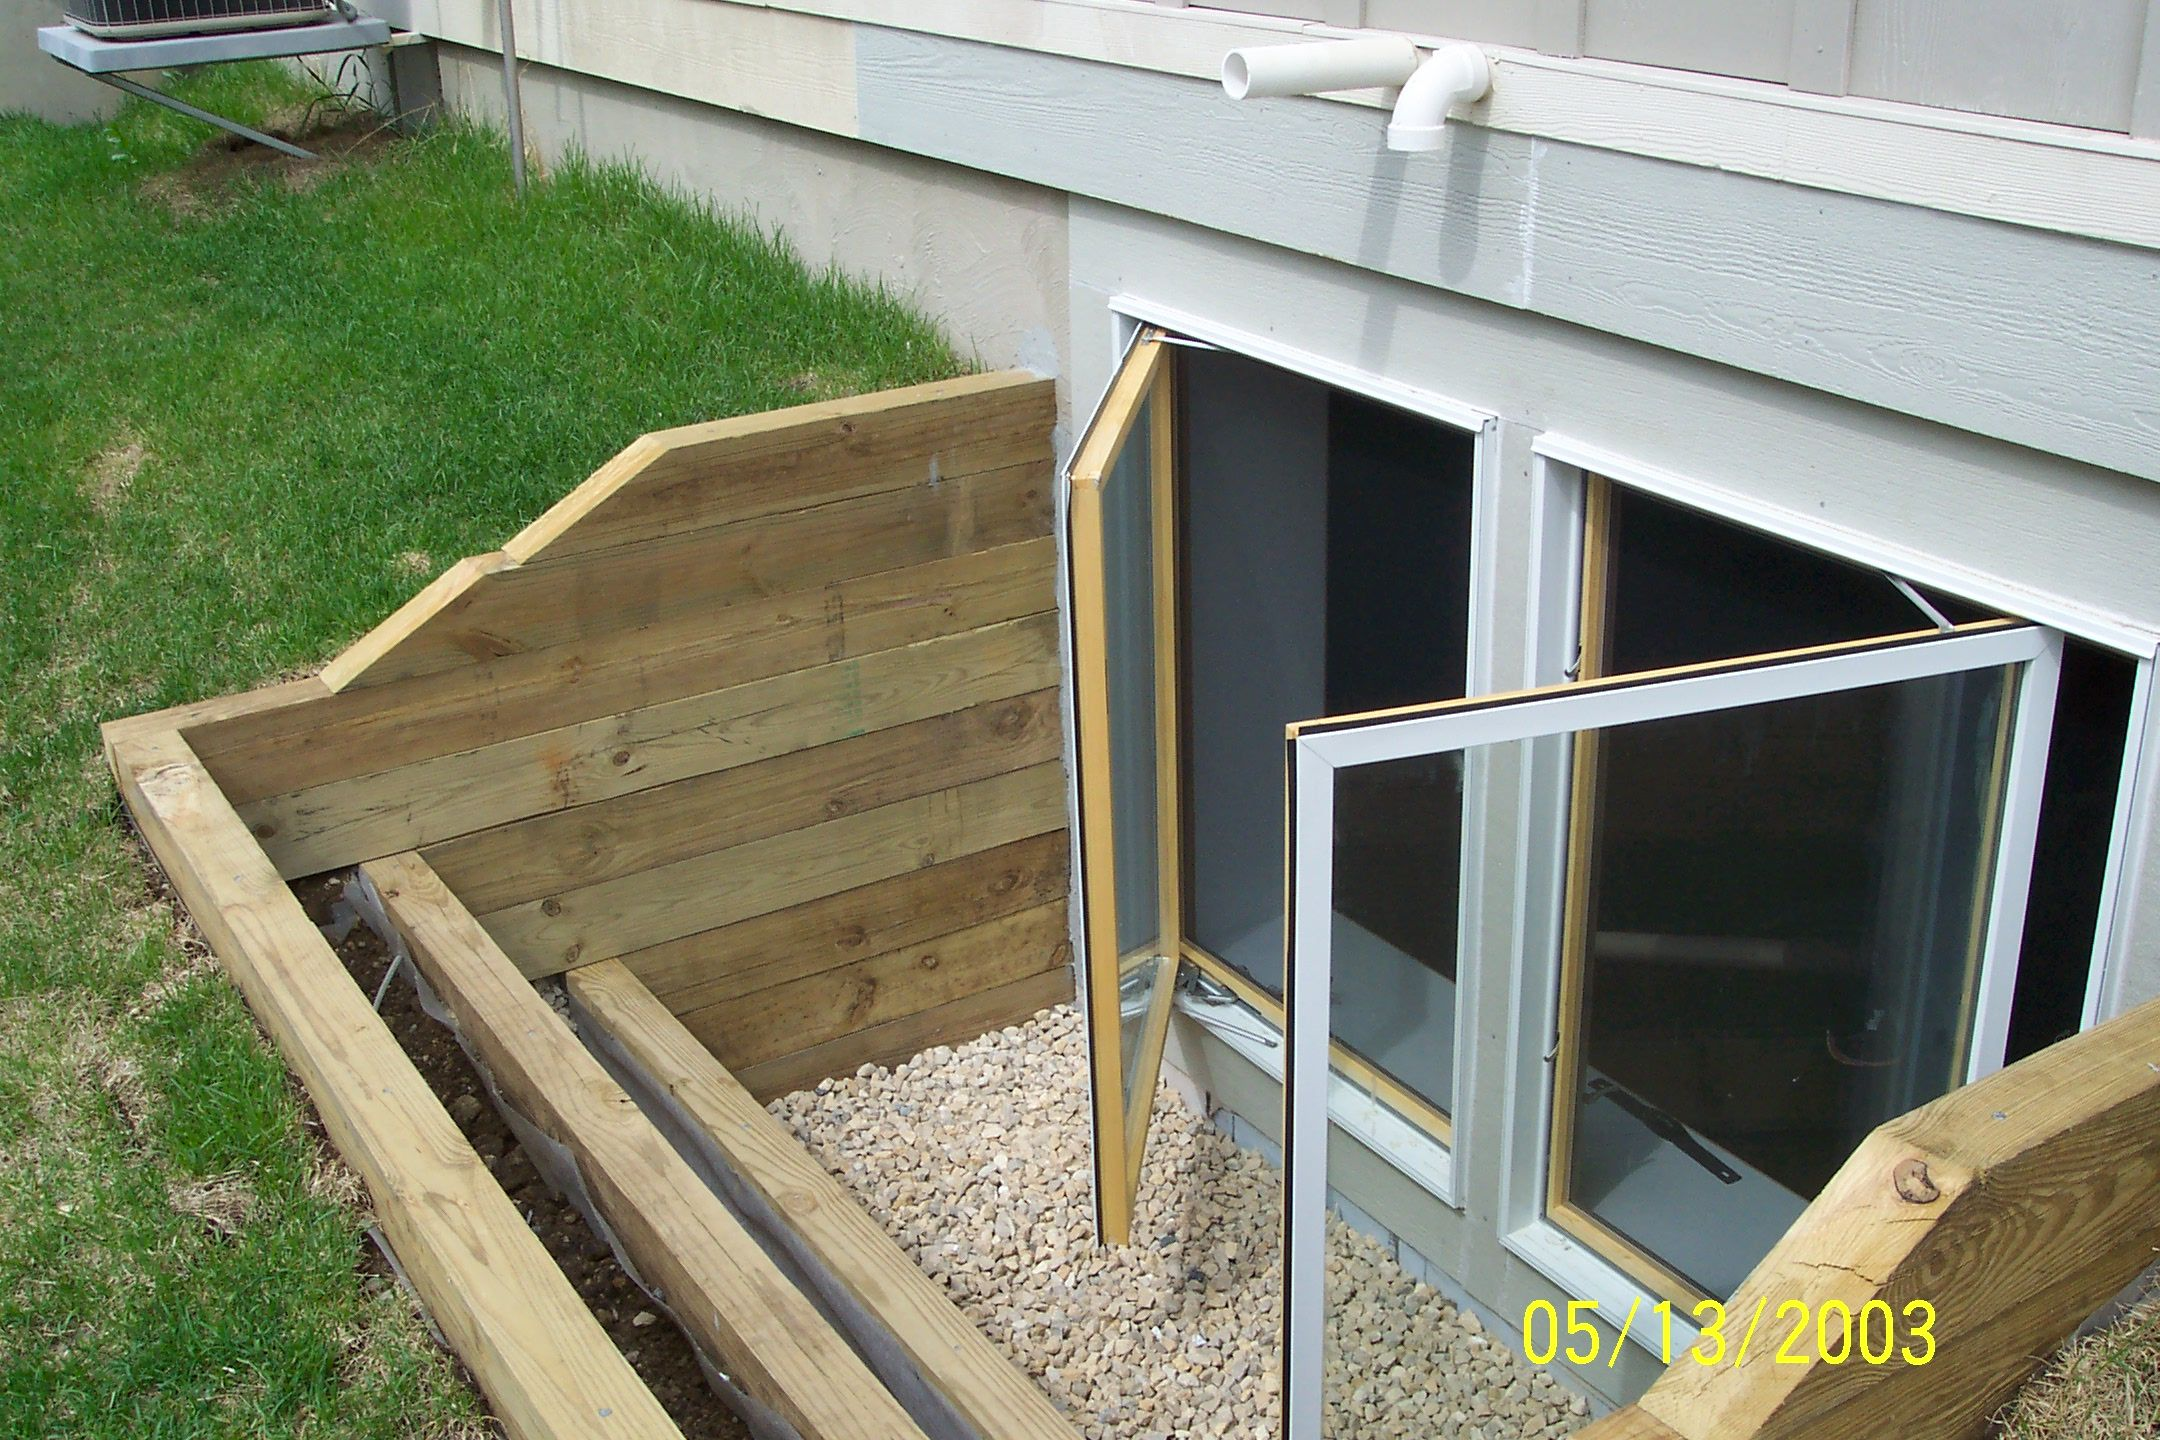 how much to install egress window how much does an egress window cost installation best mirror design ideas to inspire your homes new look homestuff